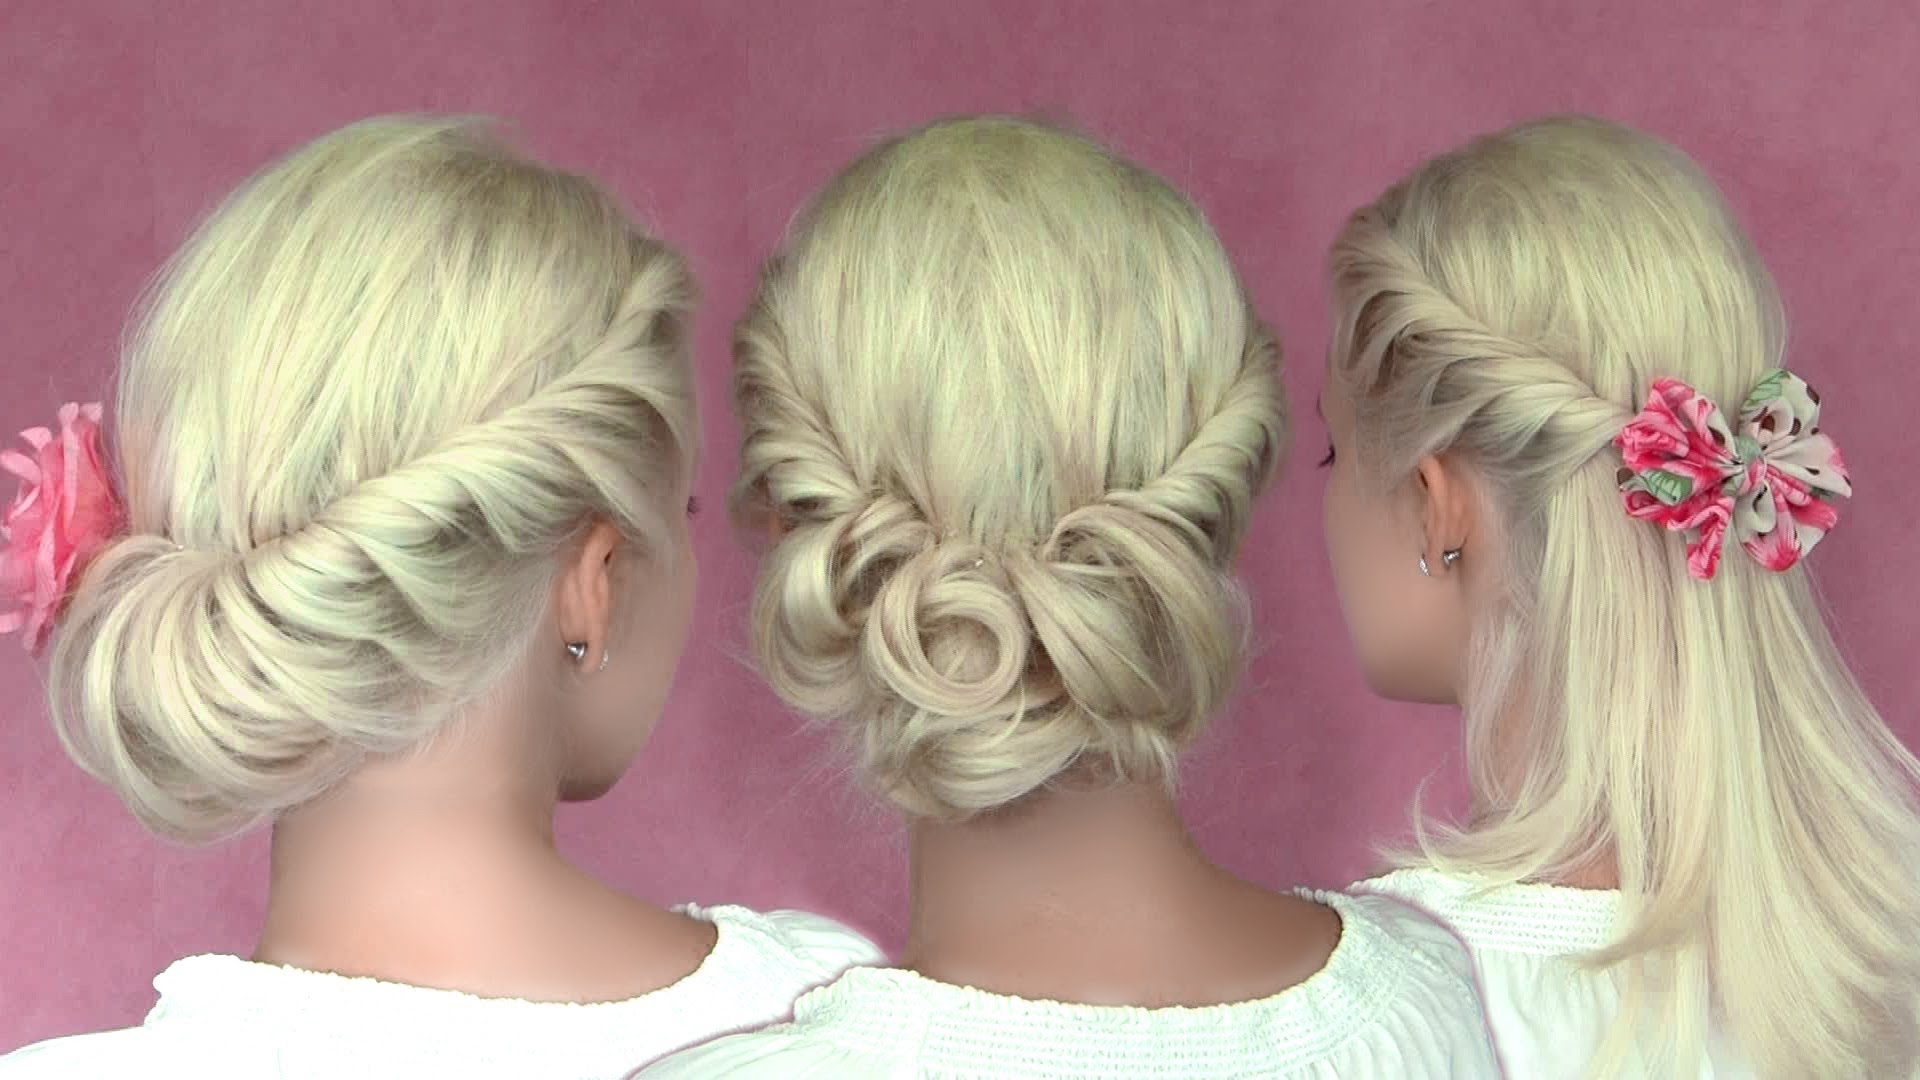 Summer Wedding Hairstyles For Medium Hair : Romantic updo hairstyles for medium long hair